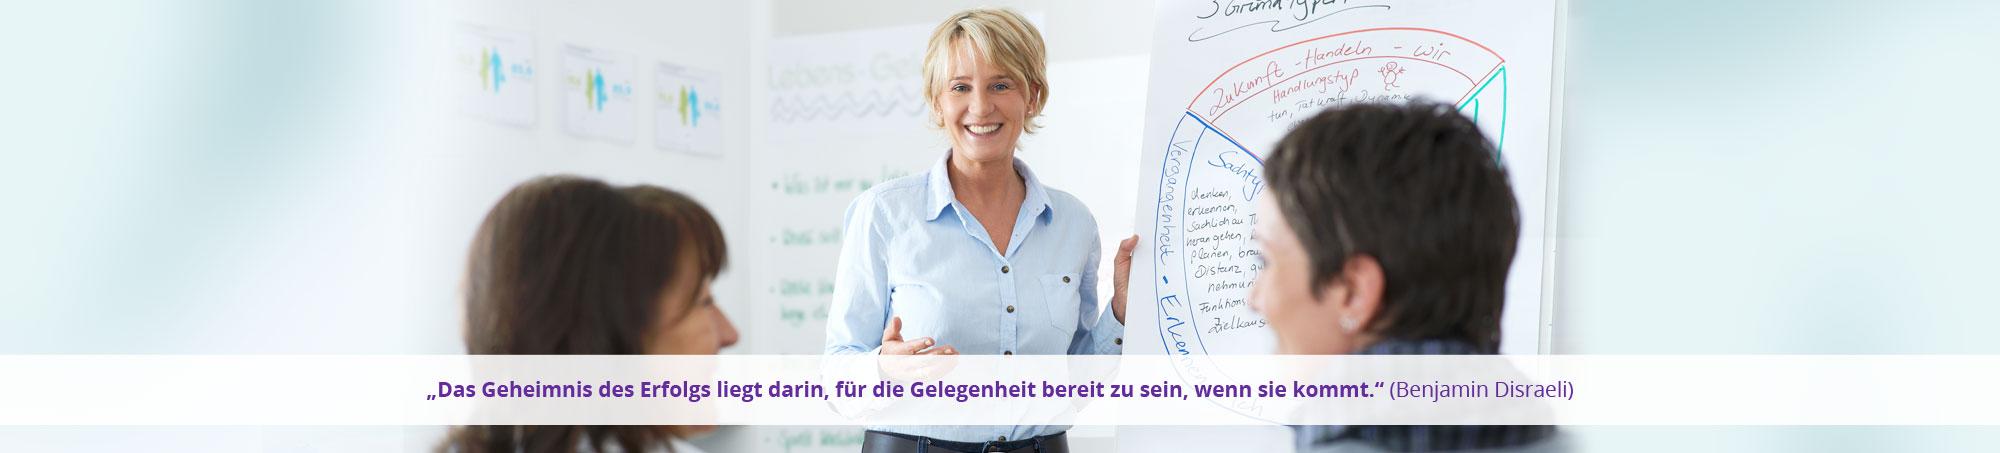 https://ax-coaching-wiesbaden.de/wp-content/uploads/2014/04/slider_ax3.jpg